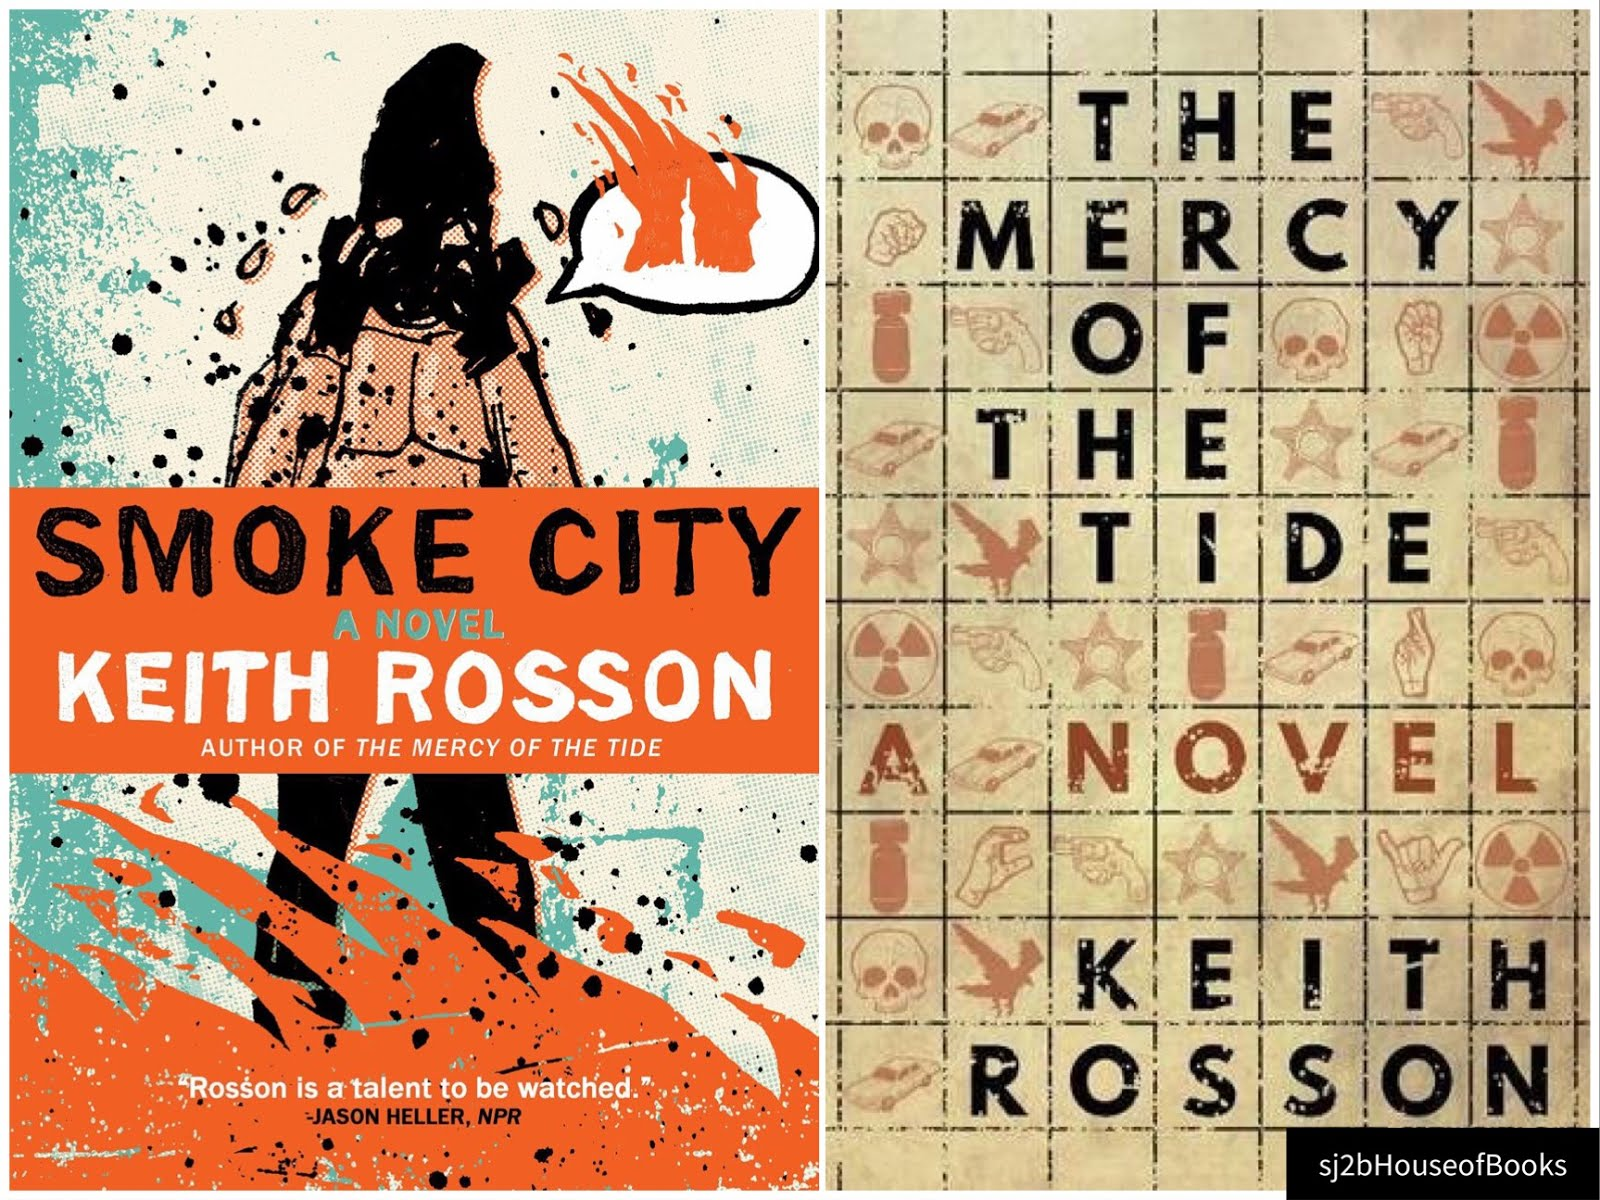 HIGHLY ANTICIPATED  READS BY KEITH ROSSON